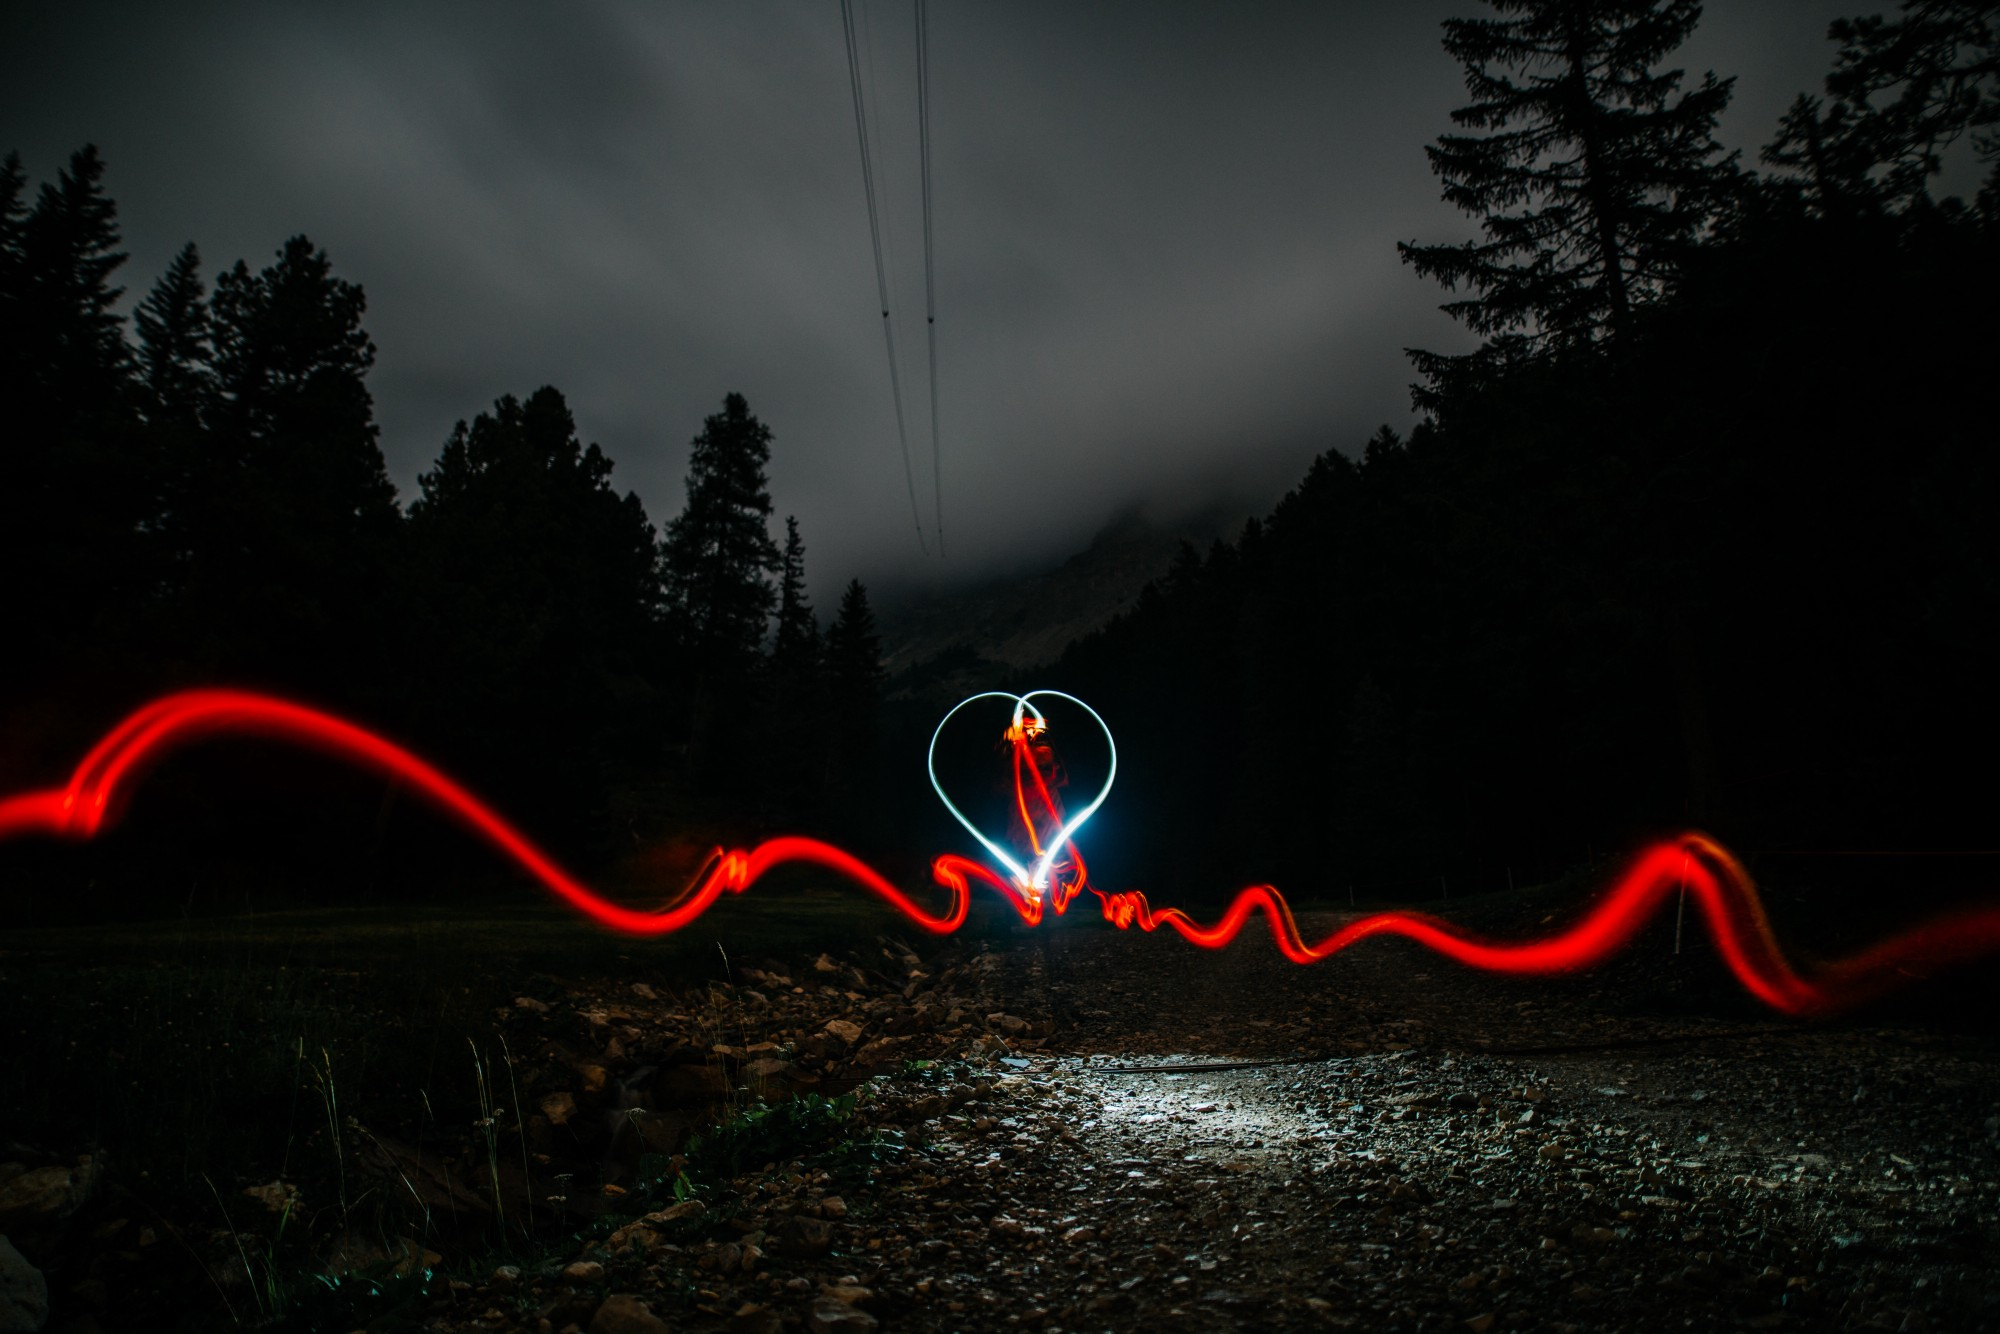 Heartbeat made with lights.